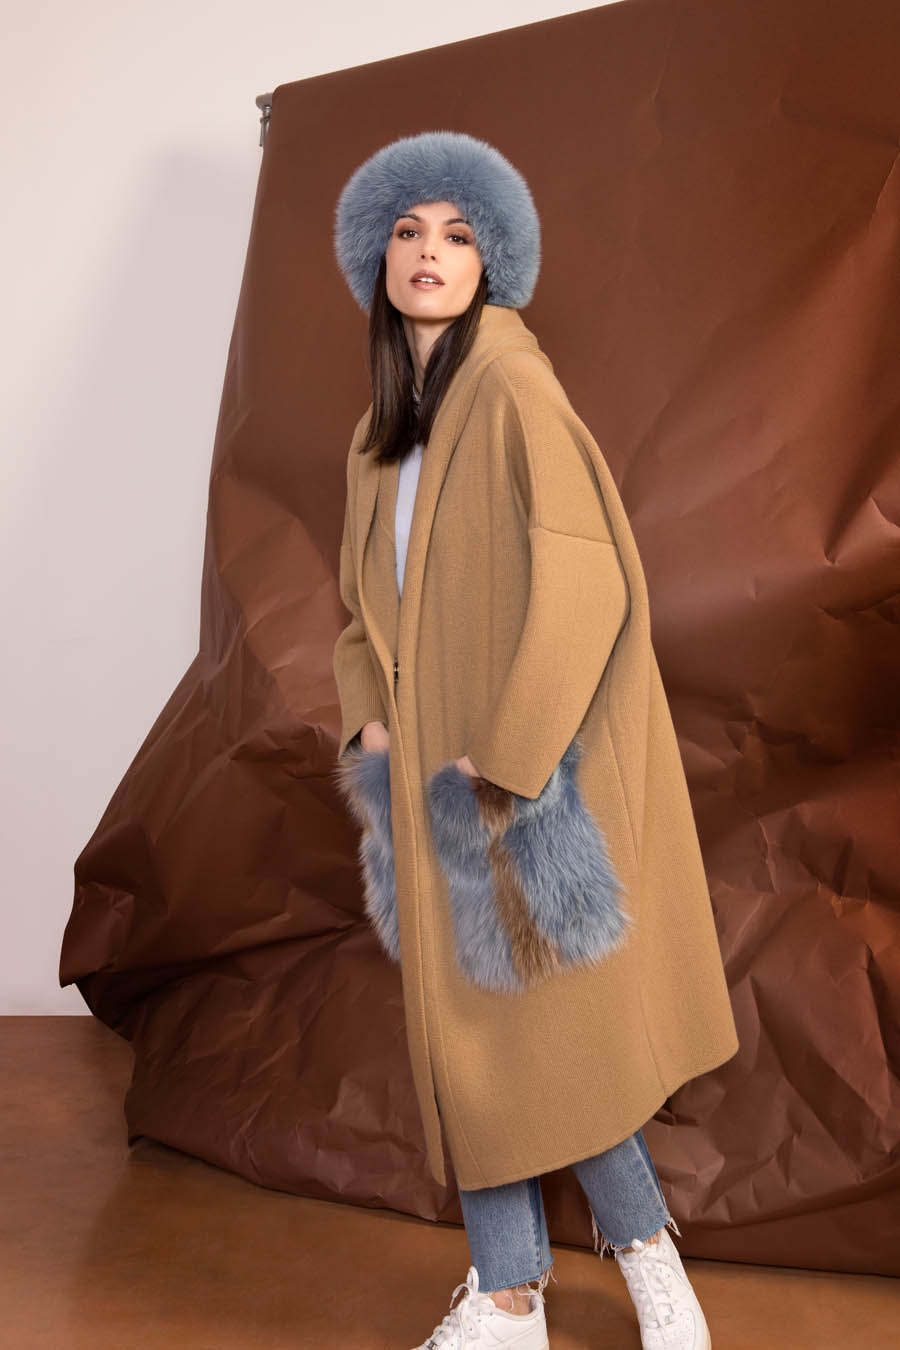 76 P1922 04 01 giovi pelliccia fur brown blue - Fall Winter 2019-20